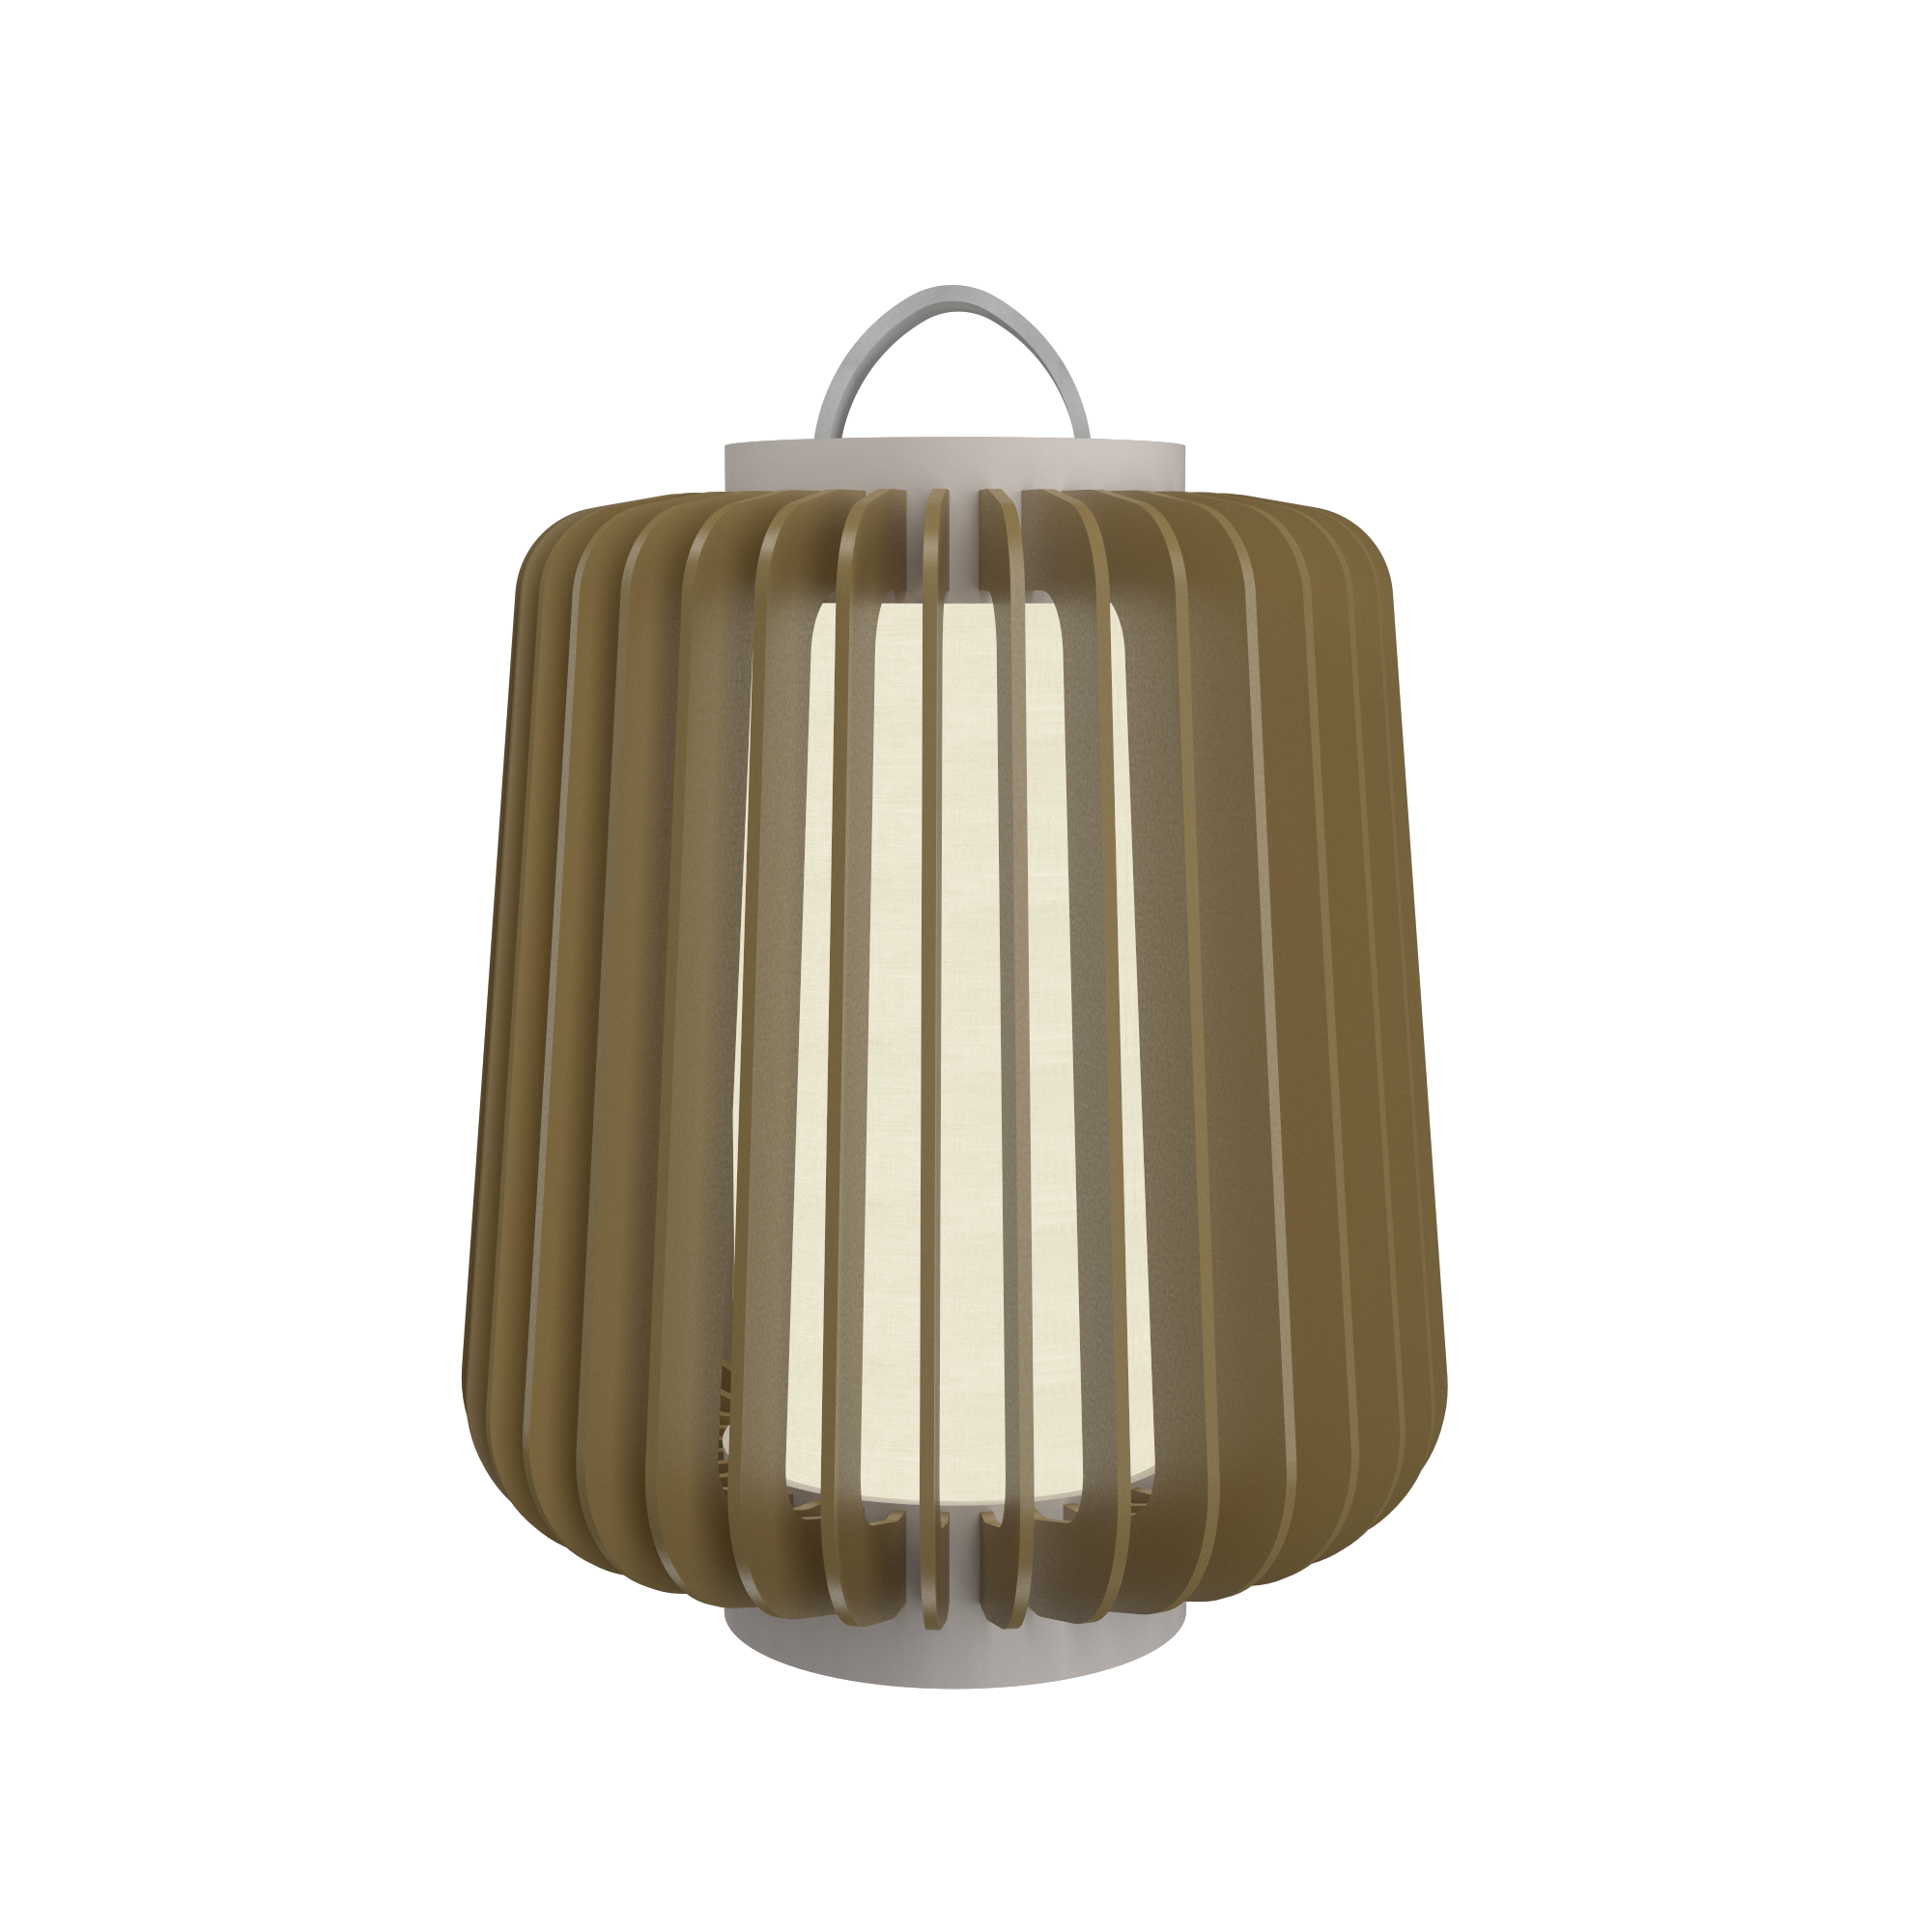 Floor Lamp Accord Stecche Di Legno 3035 - Stecche Di Legno Line Accord Lighting | Pale Gold